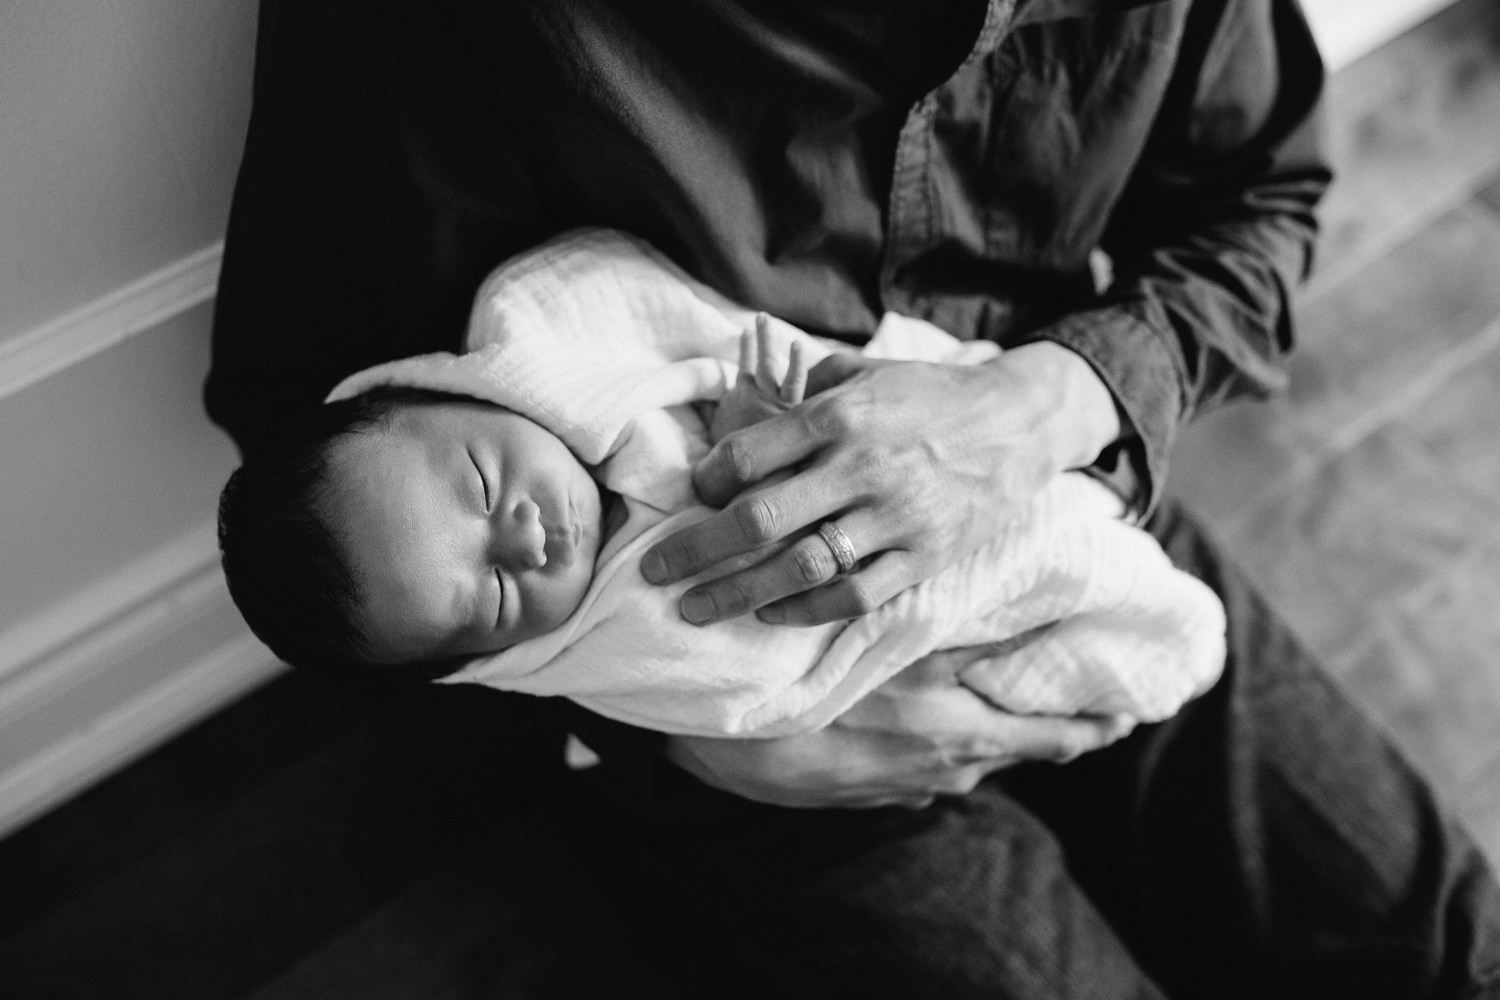 father sitting on floor holding 2 week old baby boy sleeping in white swaddle - Barrie In-Home Photos